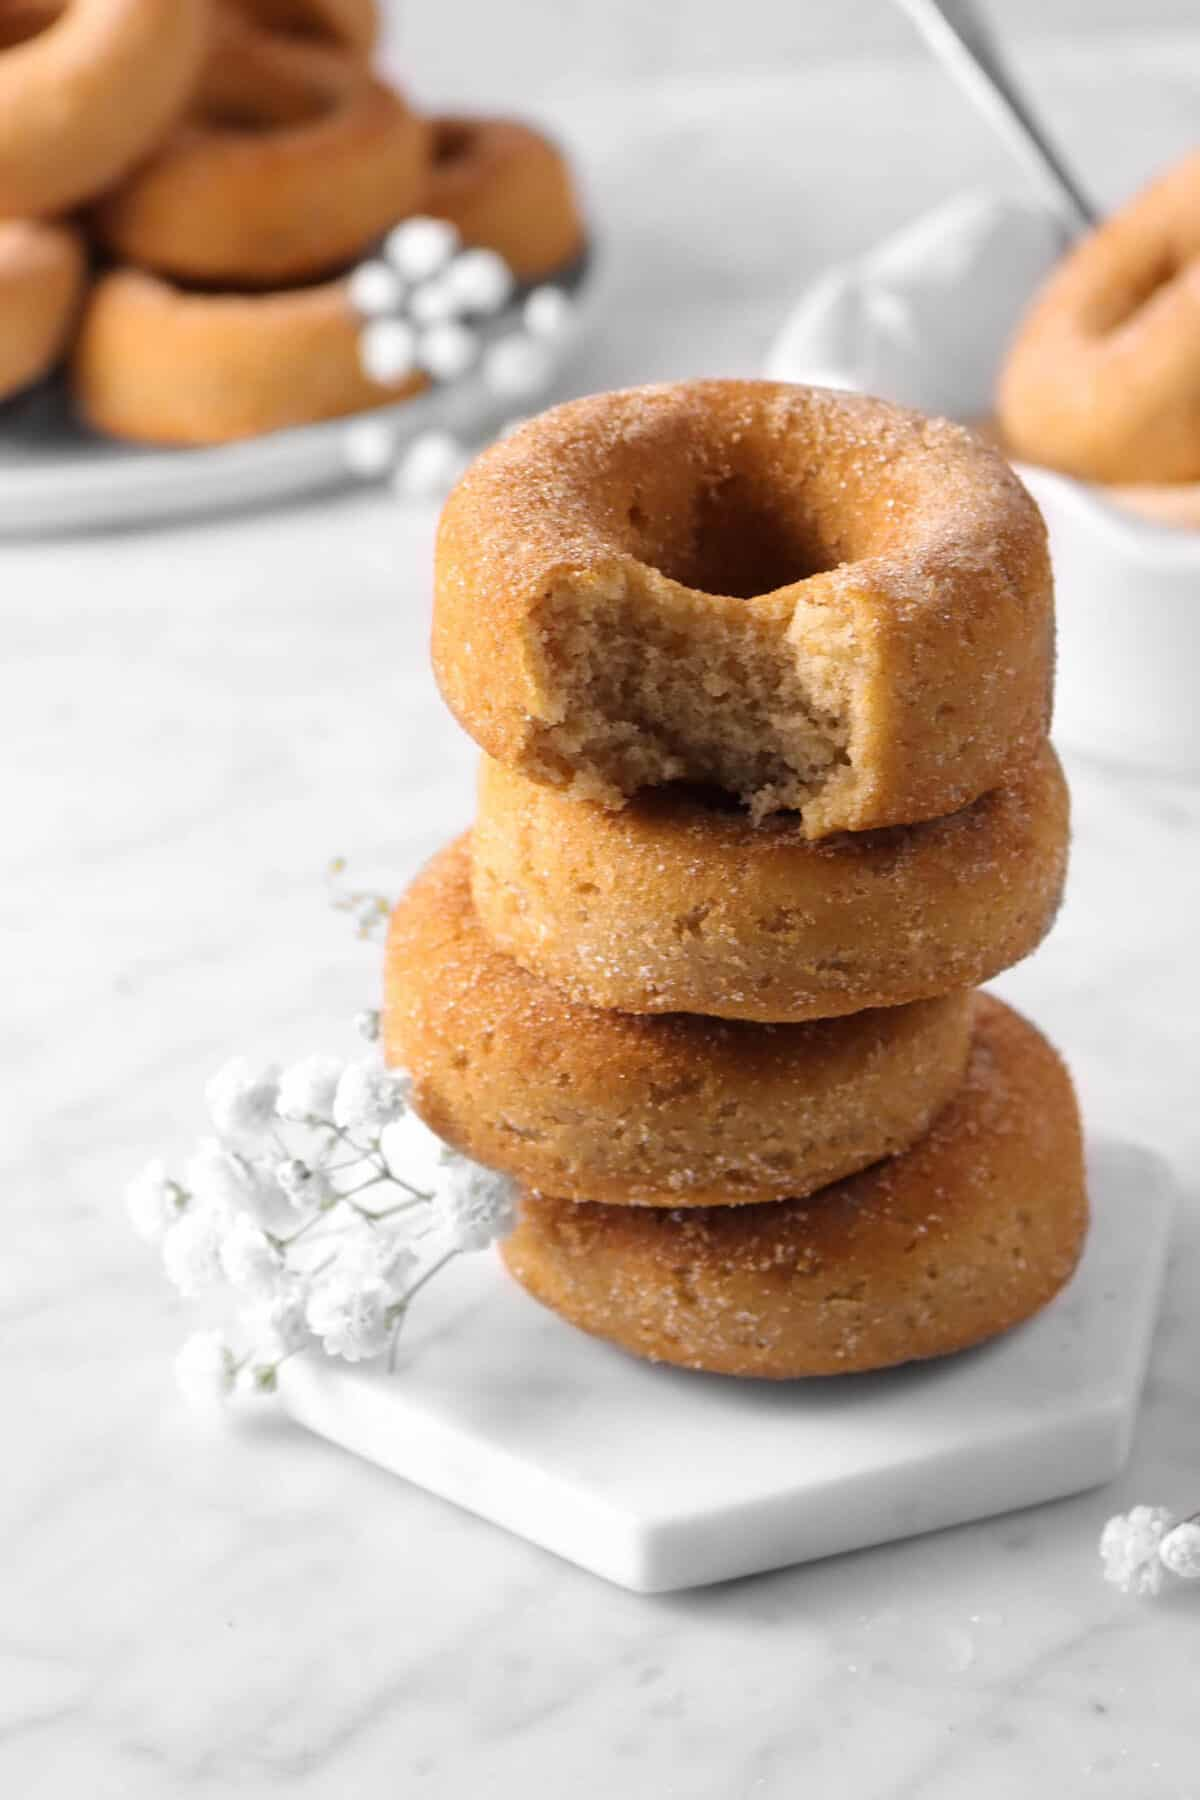 stacked four cinnamon donuts with a bite out of one, flowers, and more donuts behind